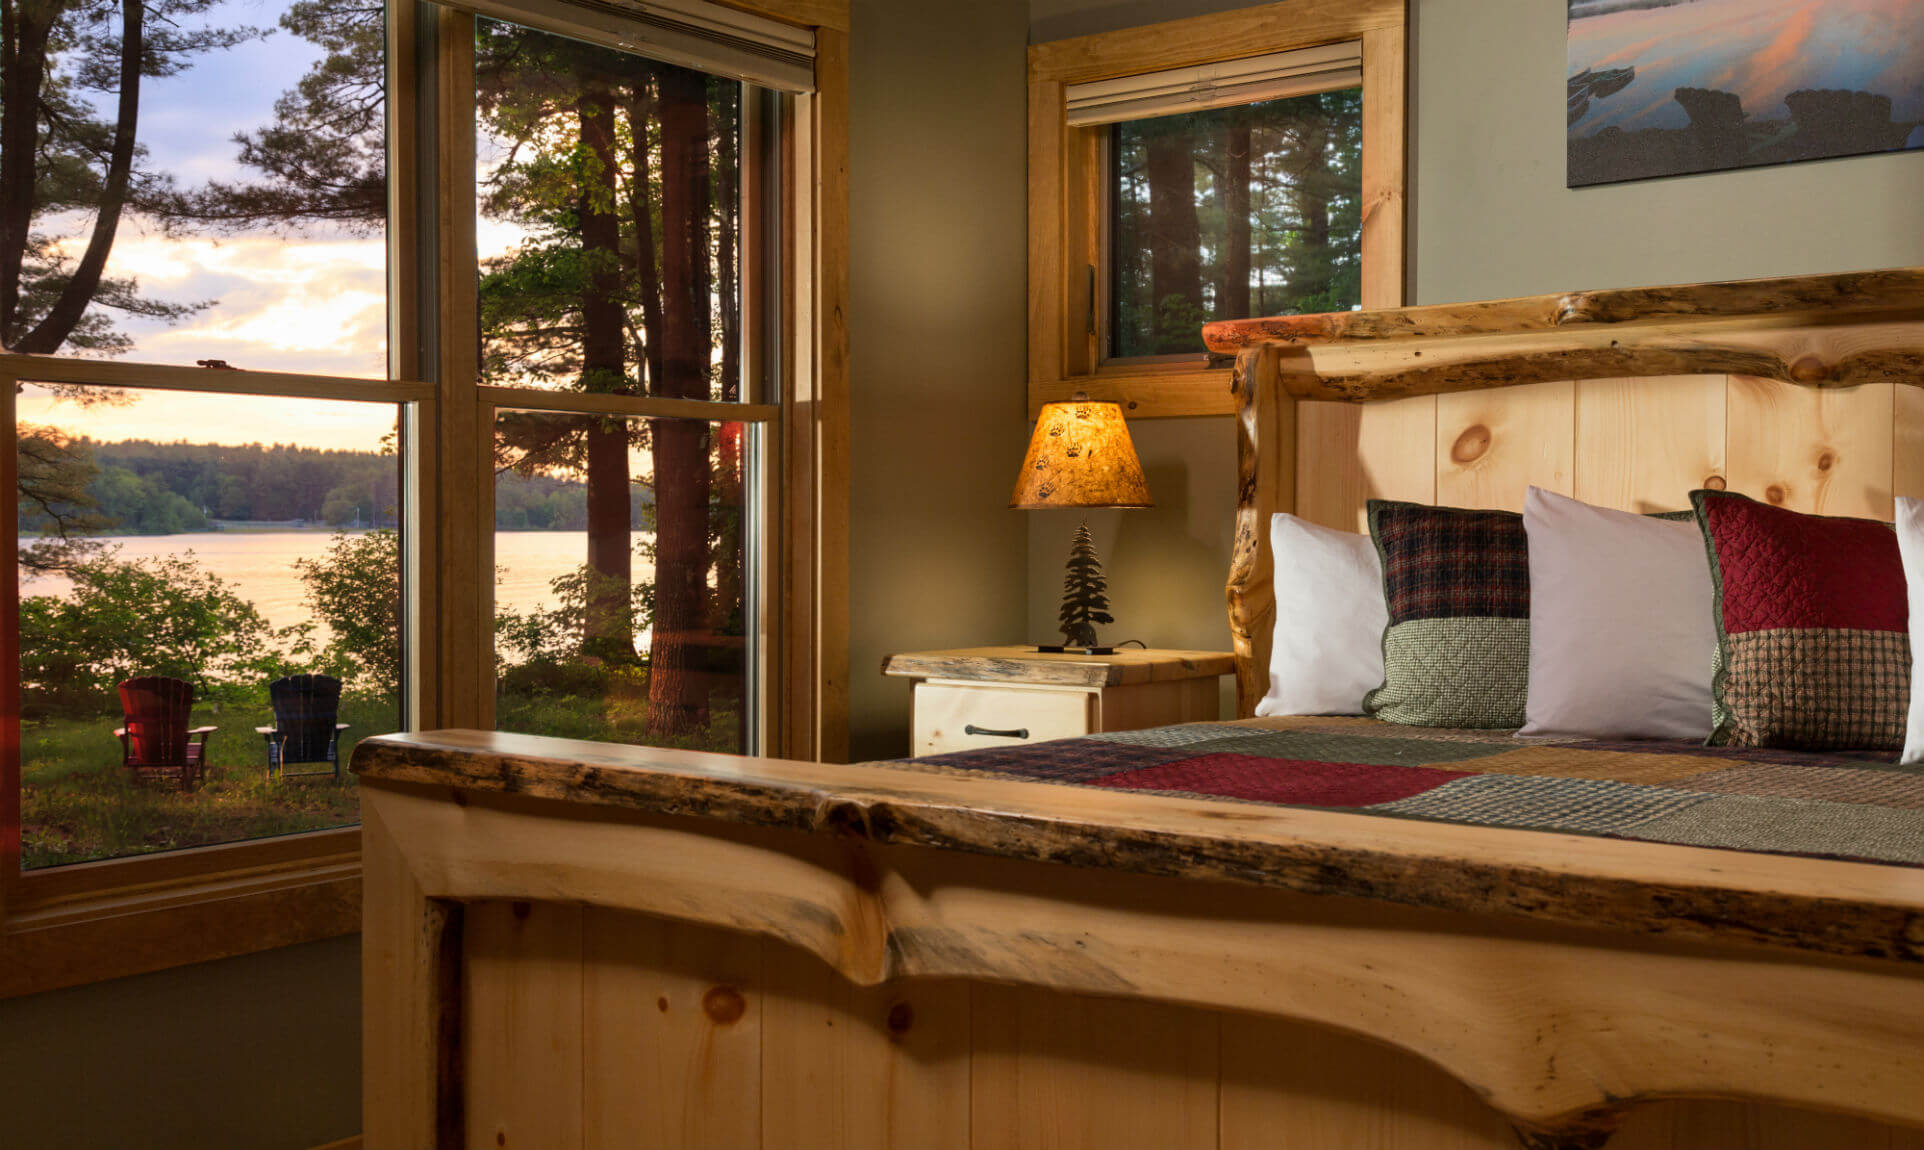 Cozy cabin bed by window with lake view